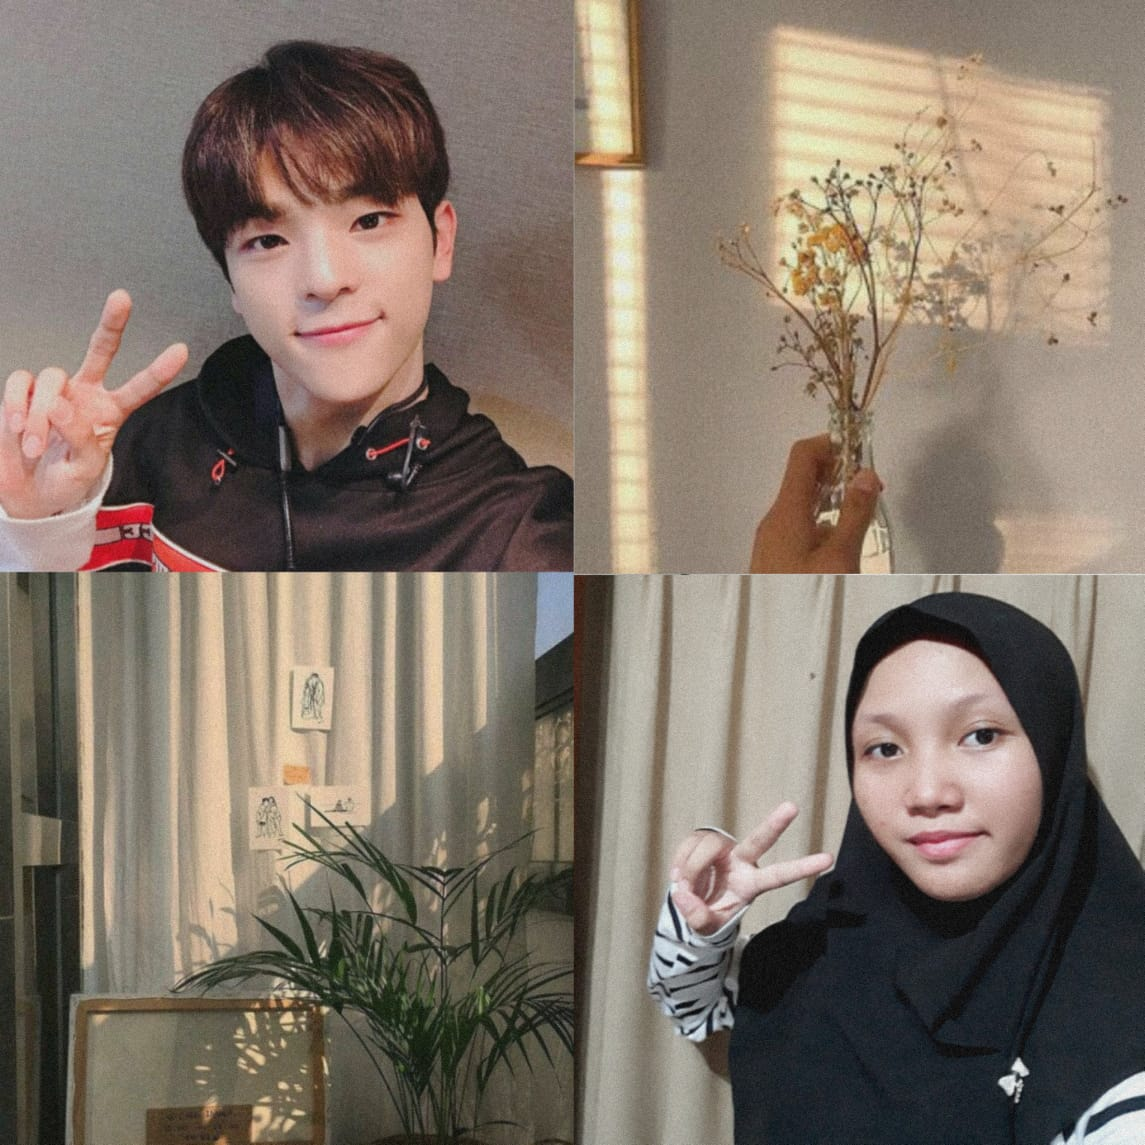 :¨·.·¨:   `·.. ➸ i miss you more than words can say ↯♡  • #StaySelcaDay  • #StrayKids  • #스트레이키즈  • #ThankYouWoojin • #김우진 ♡ @Stray_Kids ♡<br>http://pic.twitter.com/cbEfrEkGva